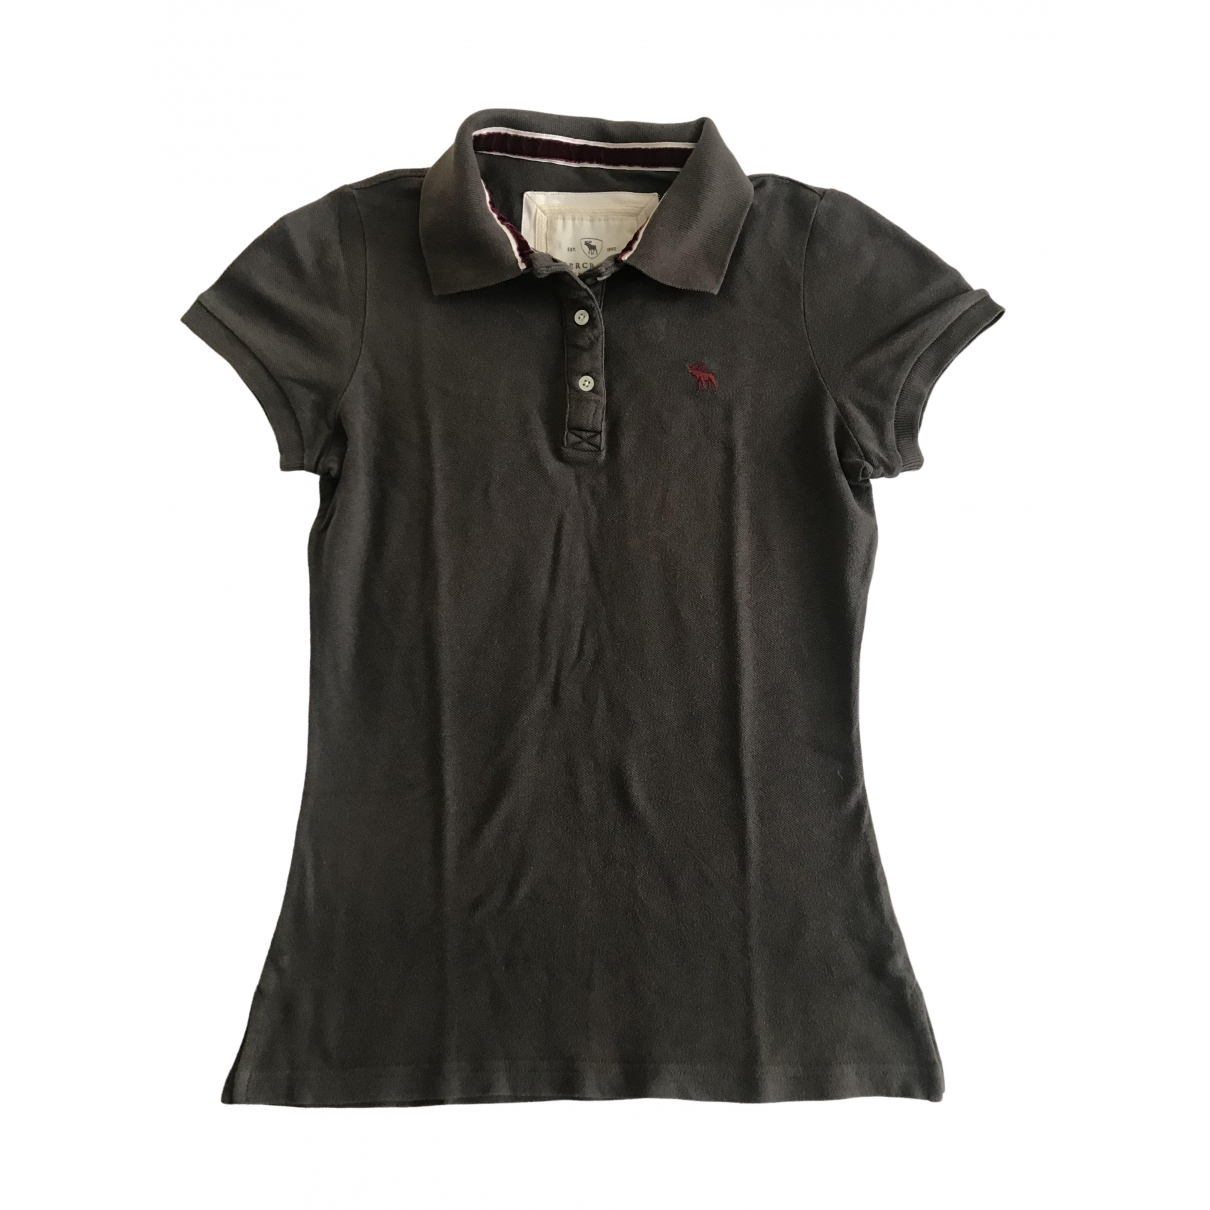 Abercrombie & Fitch \N Brown Cotton  top for Women M International